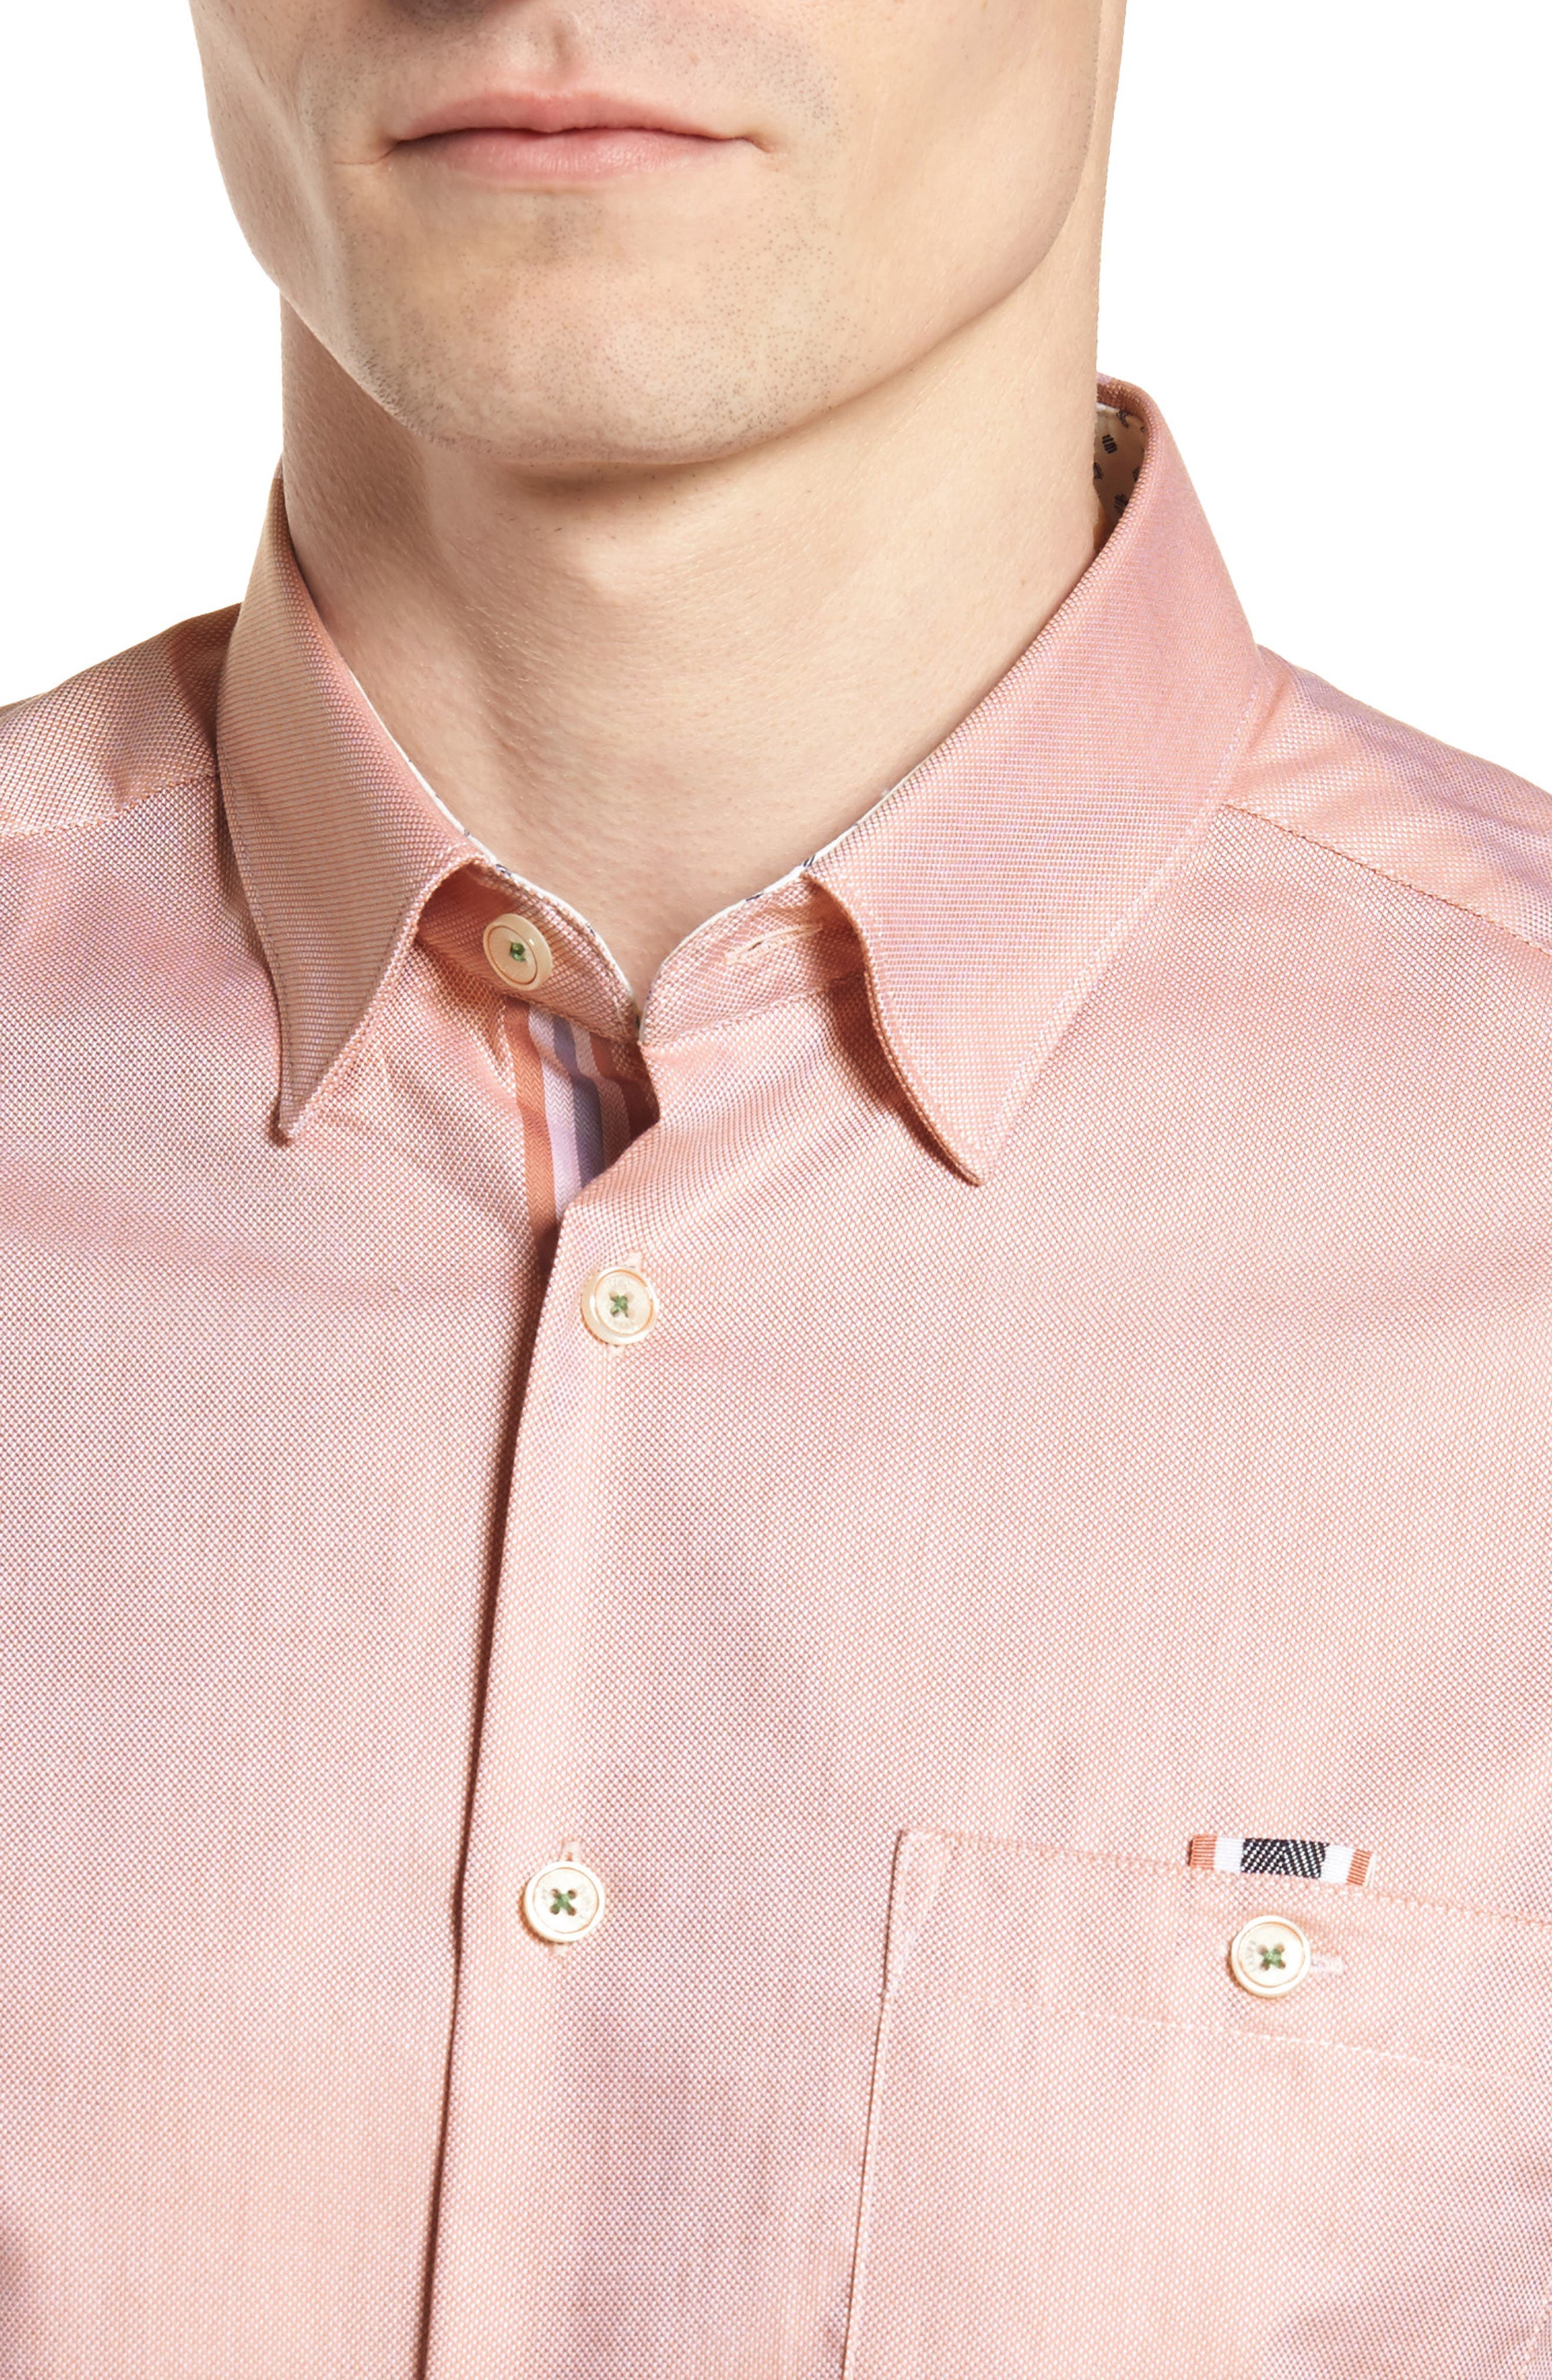 Wallo Trim Fit Short Sleeve Sport Shirt,                             Alternate thumbnail 2, color,                             Pink